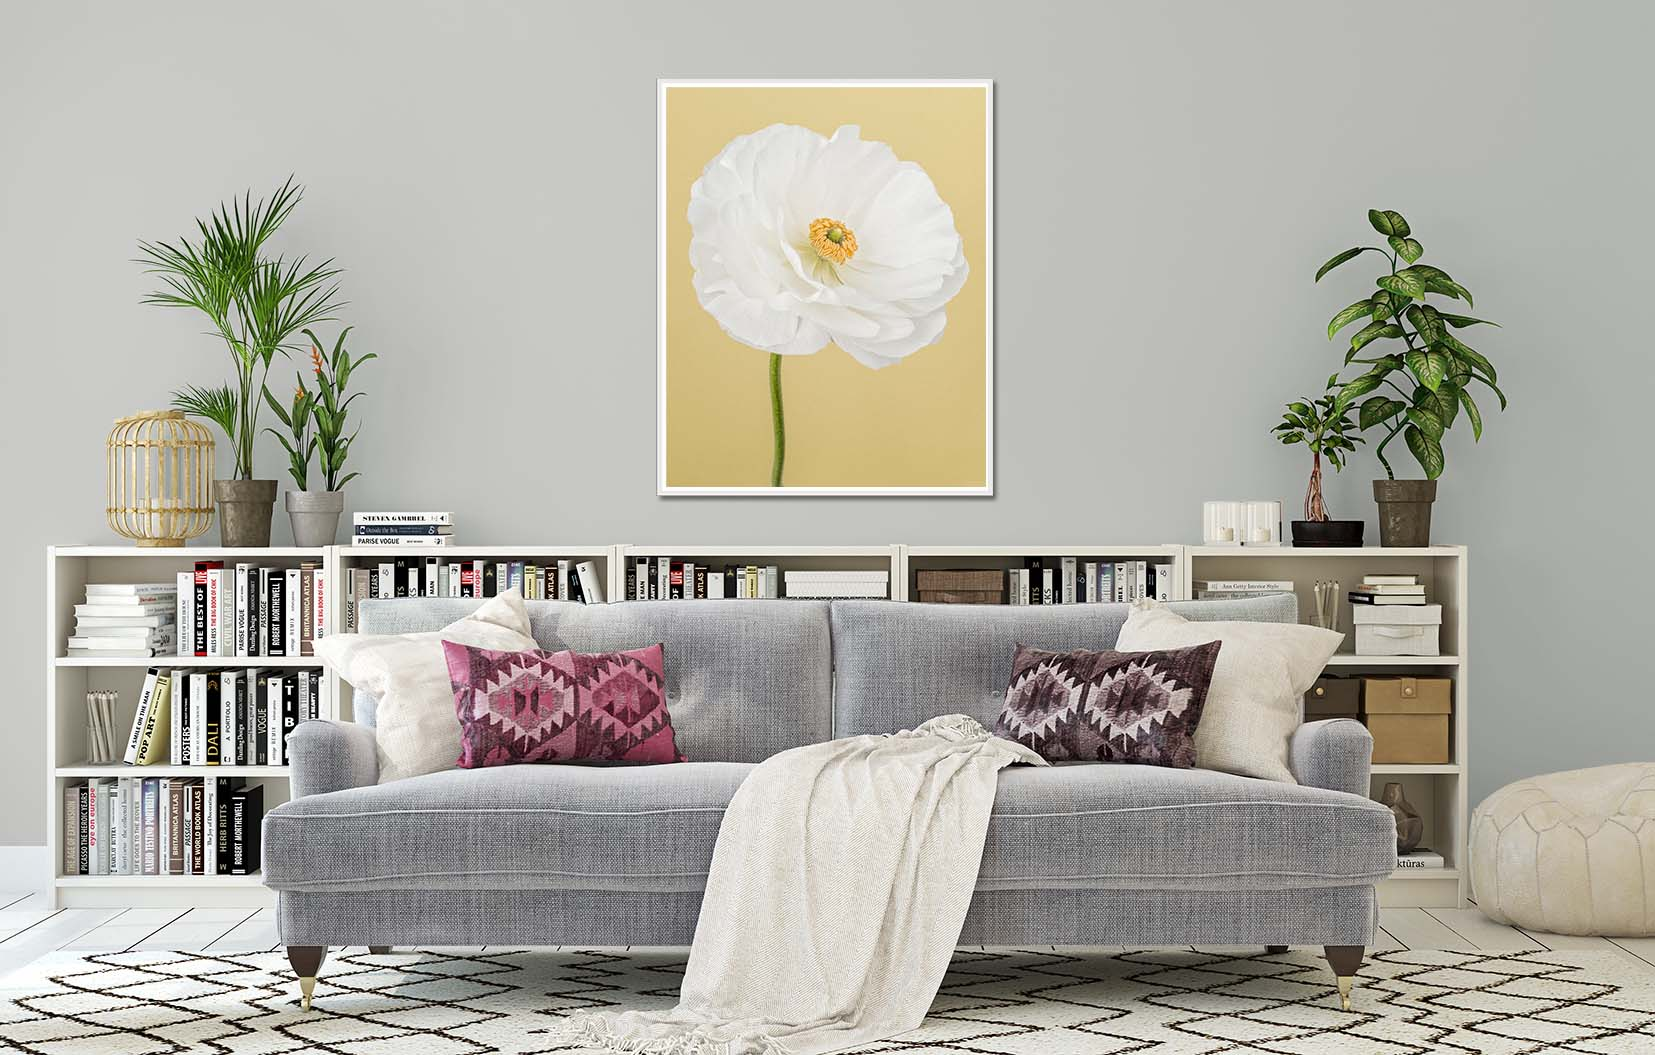 White Ranunculus I. Limited edition fine art print of a white ranunculus on a yellow background. Botanical prints and floral studies by fine art photographer Paul Coghlin.